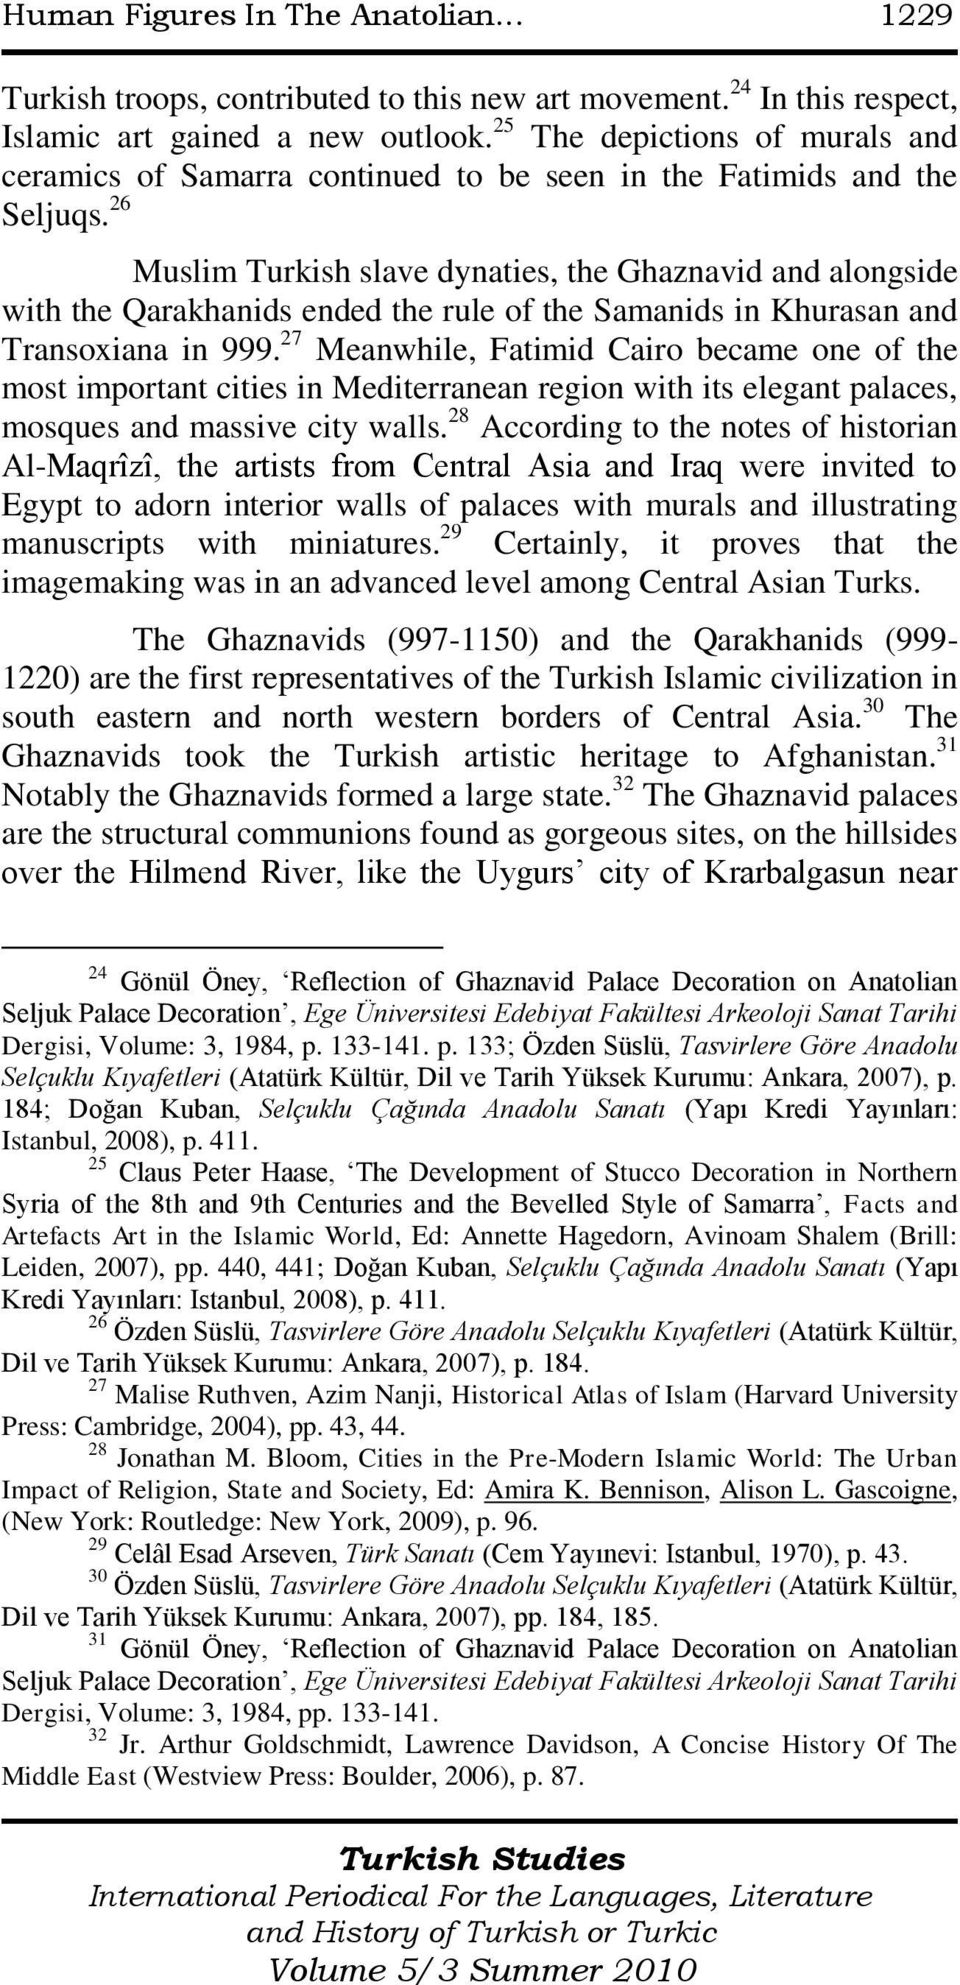 26 Muslim Turkish slave dynaties, the Ghaznavid and alongside with the Qarakhanids ended the rule of the Samanids in Khurasan and Transoxiana in 999.